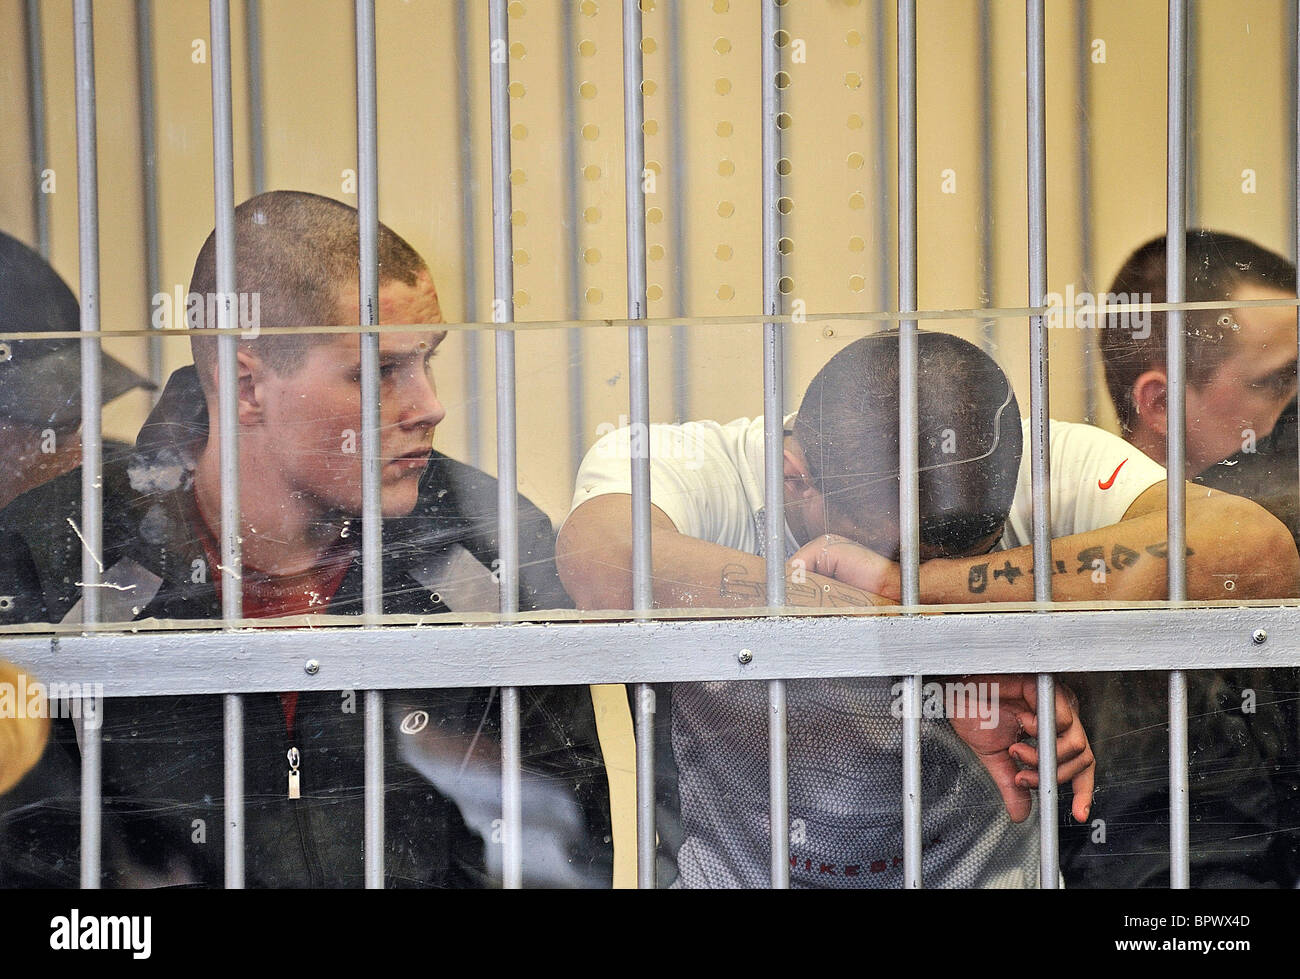 Organizers of juvenile prison riot stand trial - Stock Image